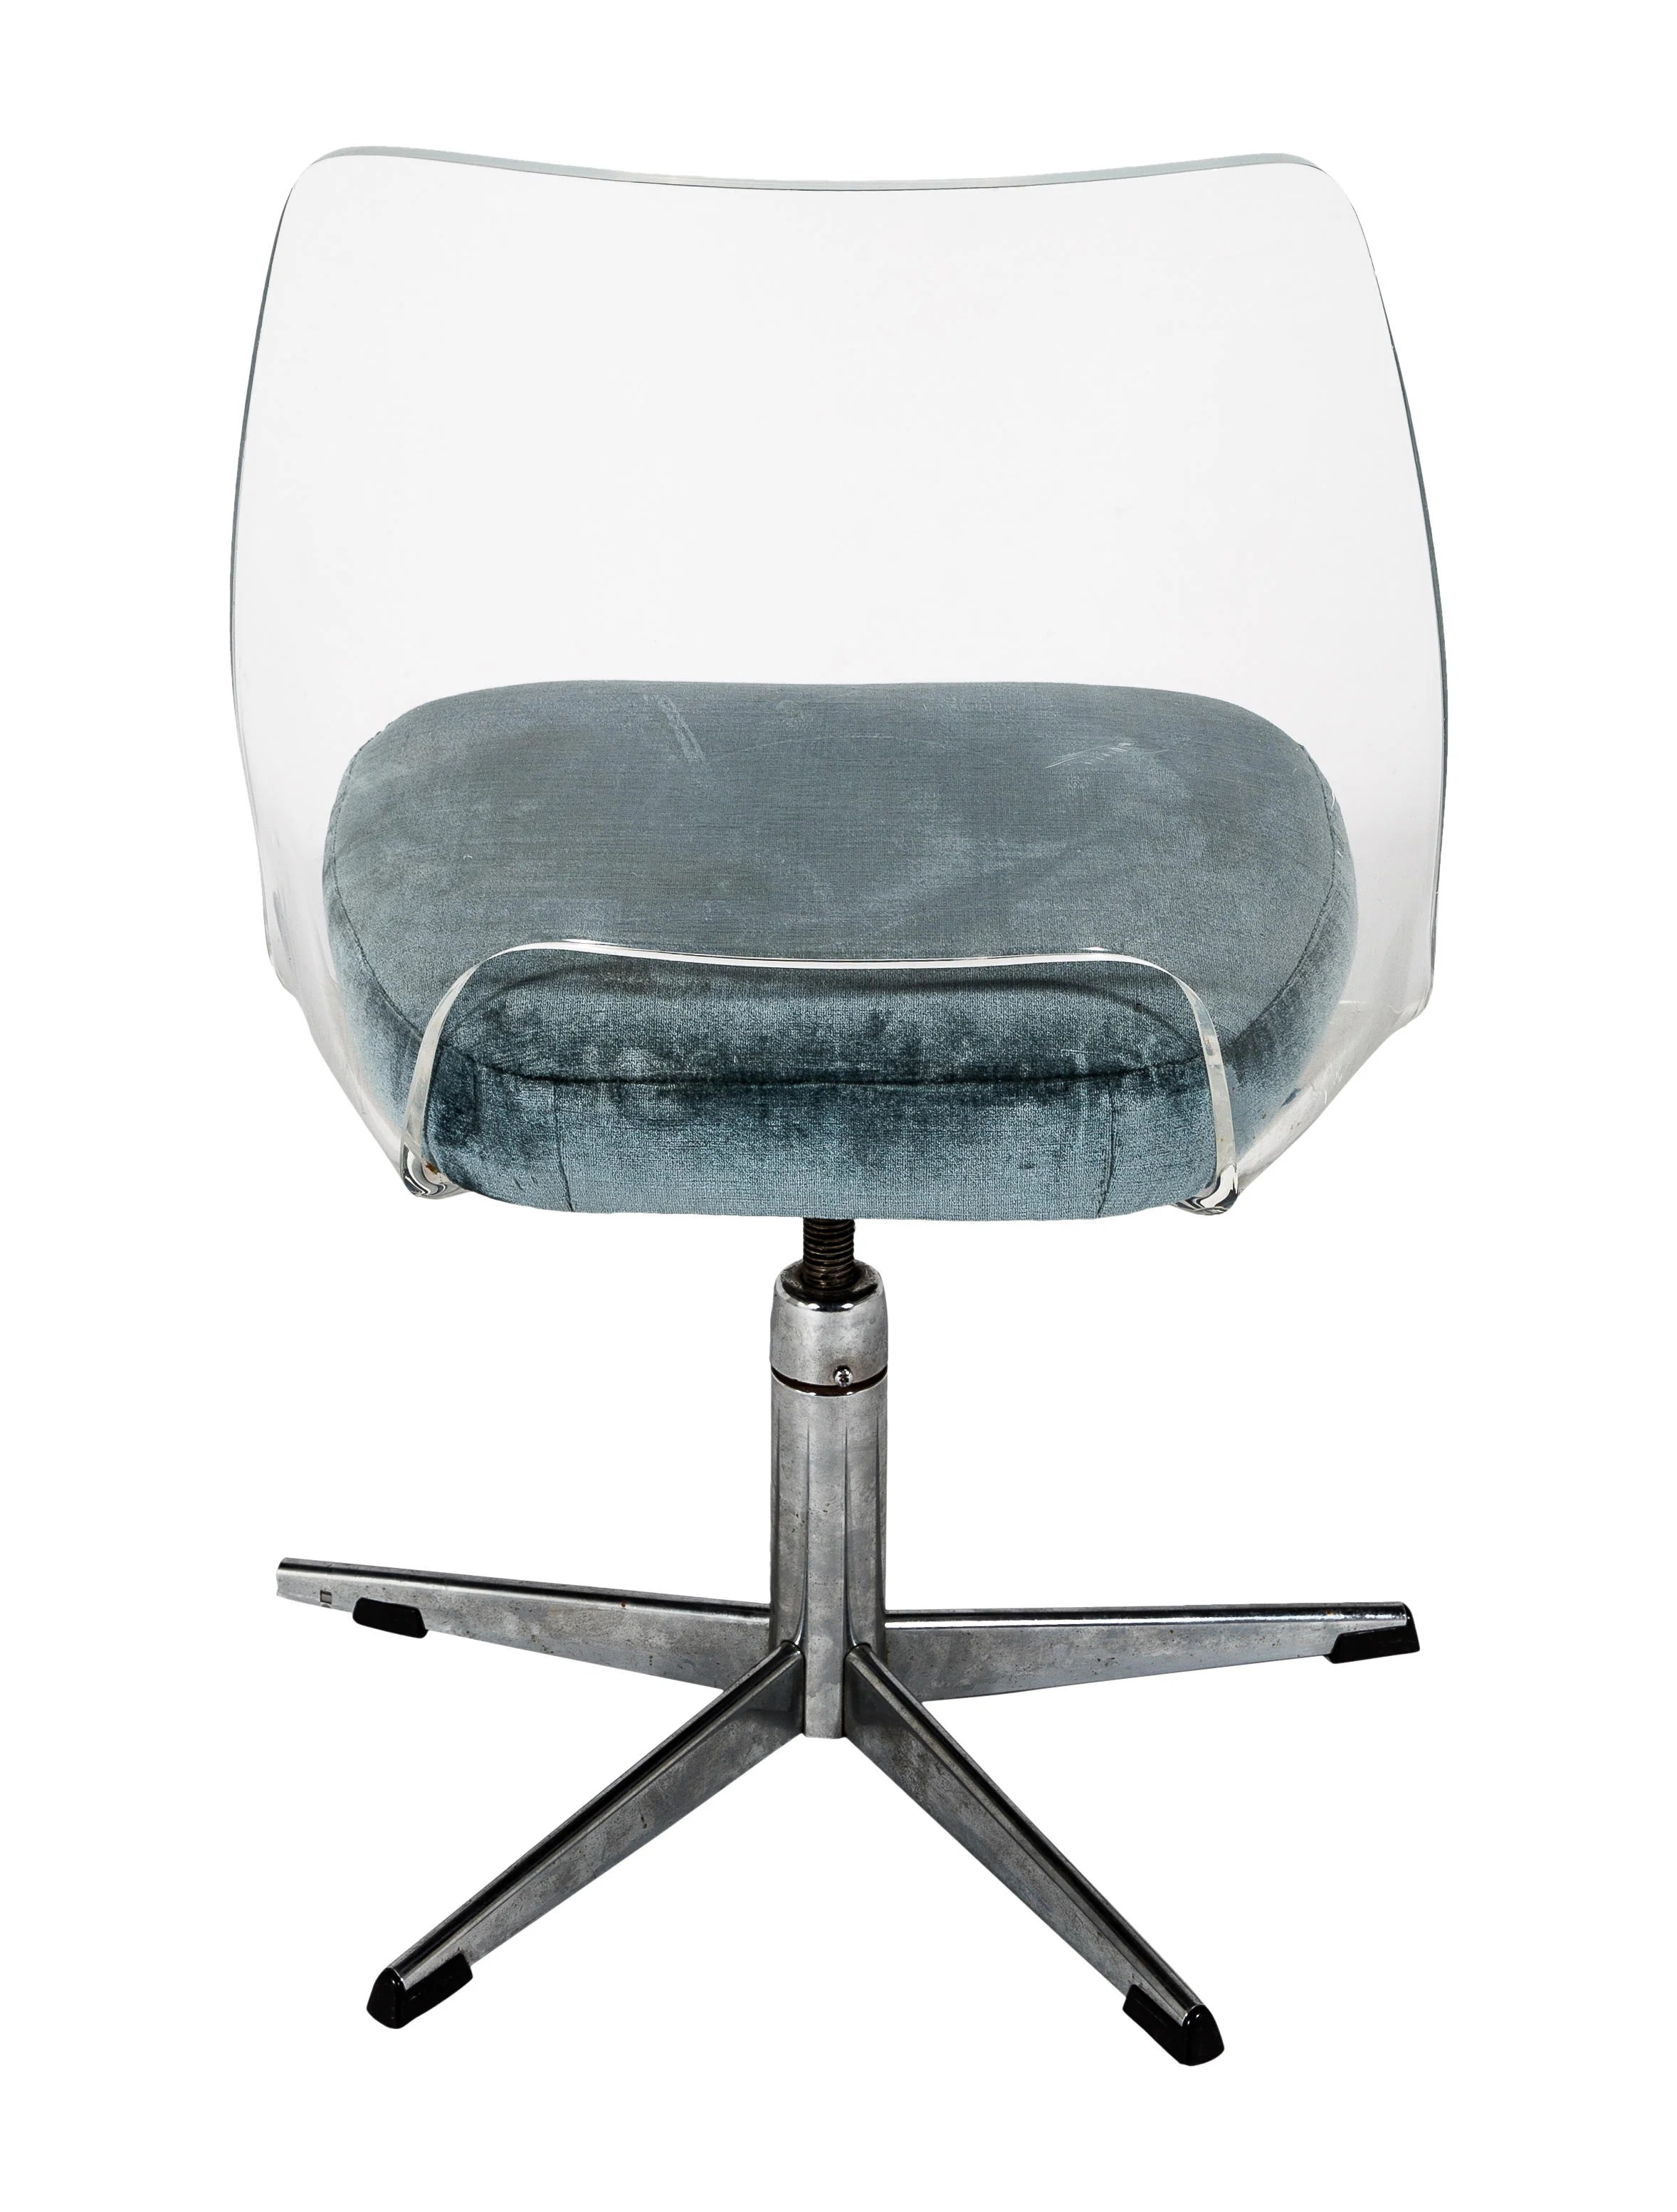 clear acrylic swivel office chair small leather lounge and ottoman doerner faultless lucite upholstered desk